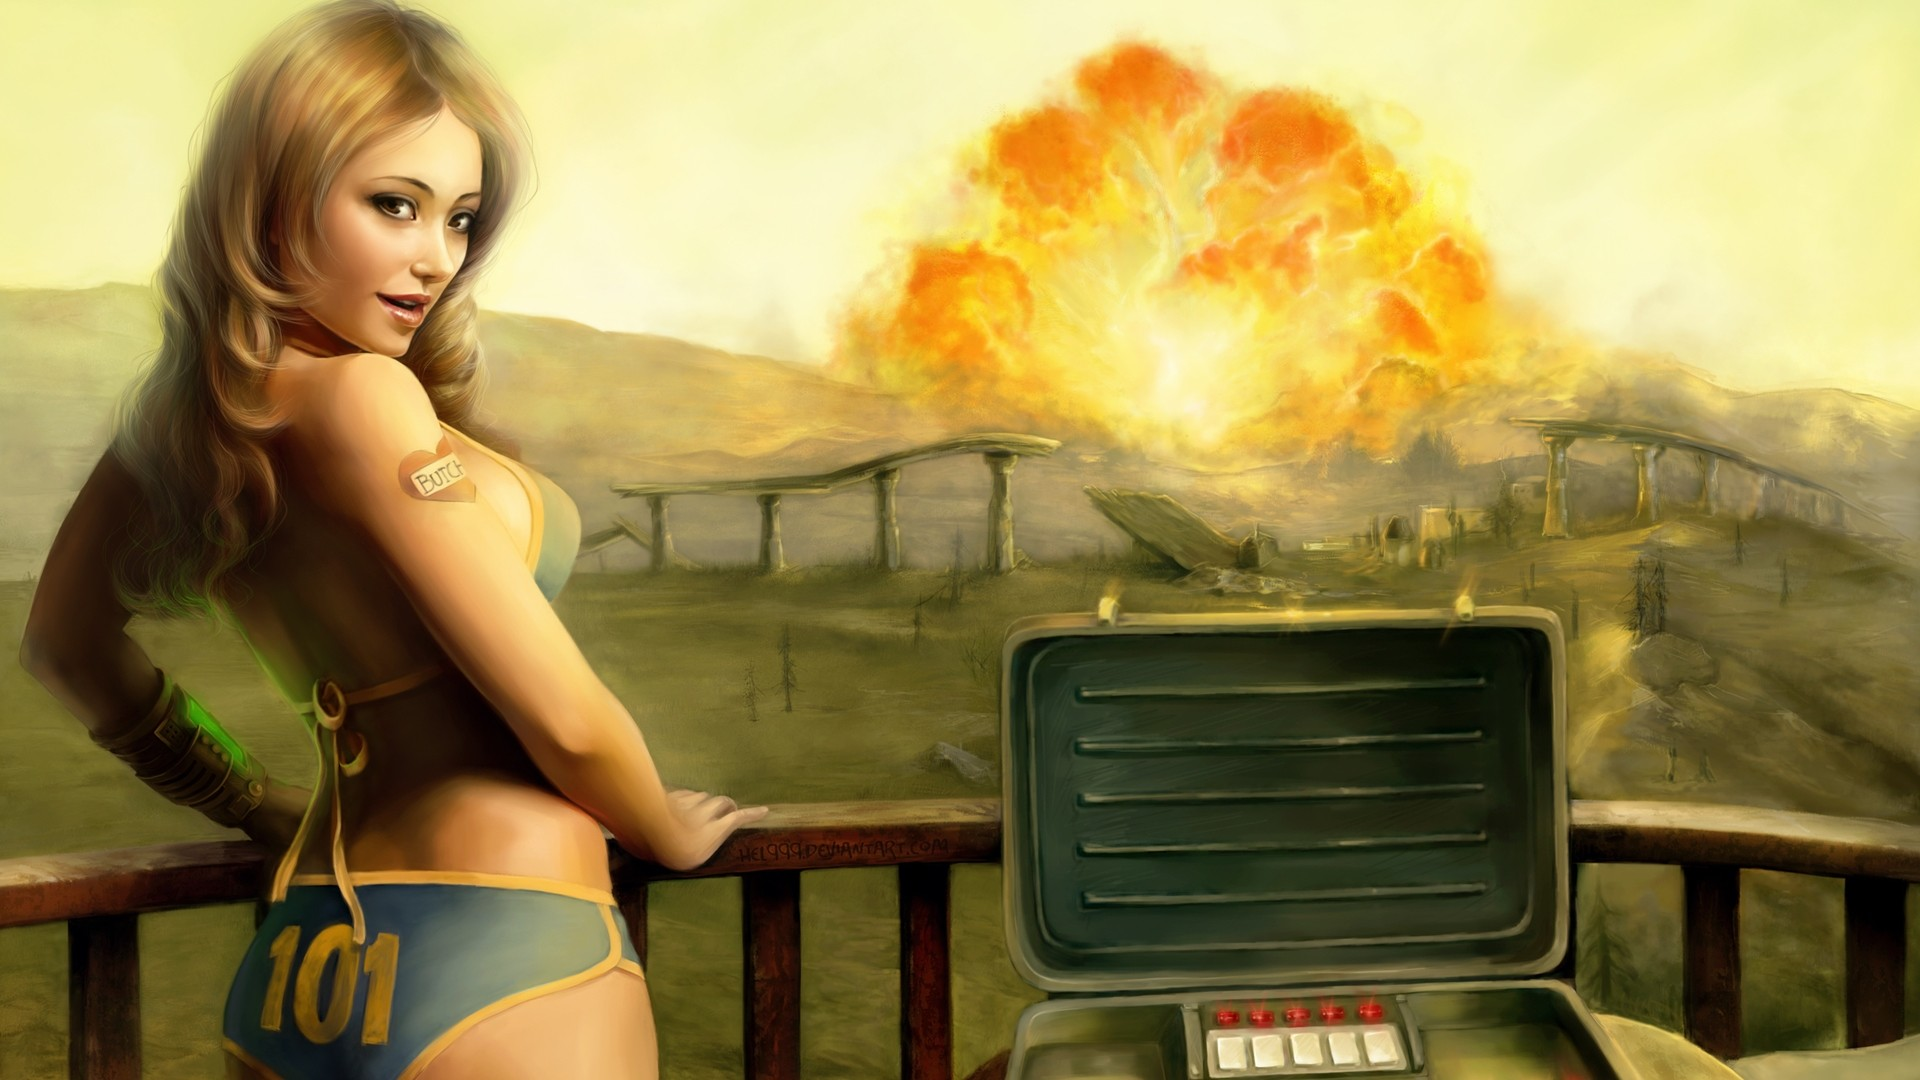 car wallpaper hd for iphone 5 7   Fallout 4 …